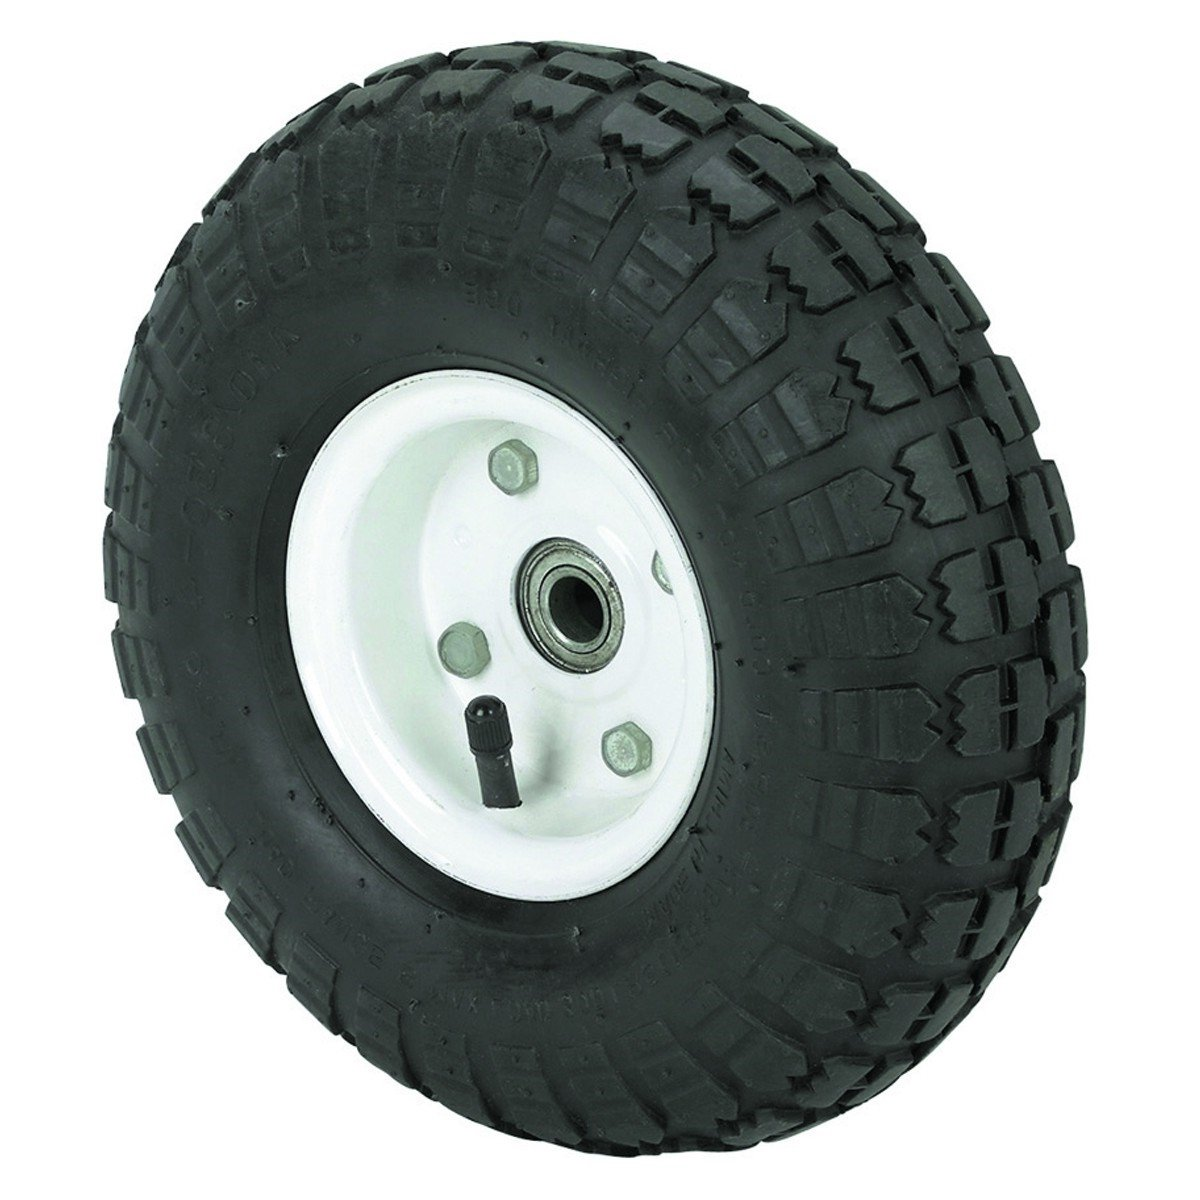 300 lbs 10 in. Pneumatic Tire Wheel with White Hub wagons, hand trucks and yard trailers, garden, shop All-Terrain Thread